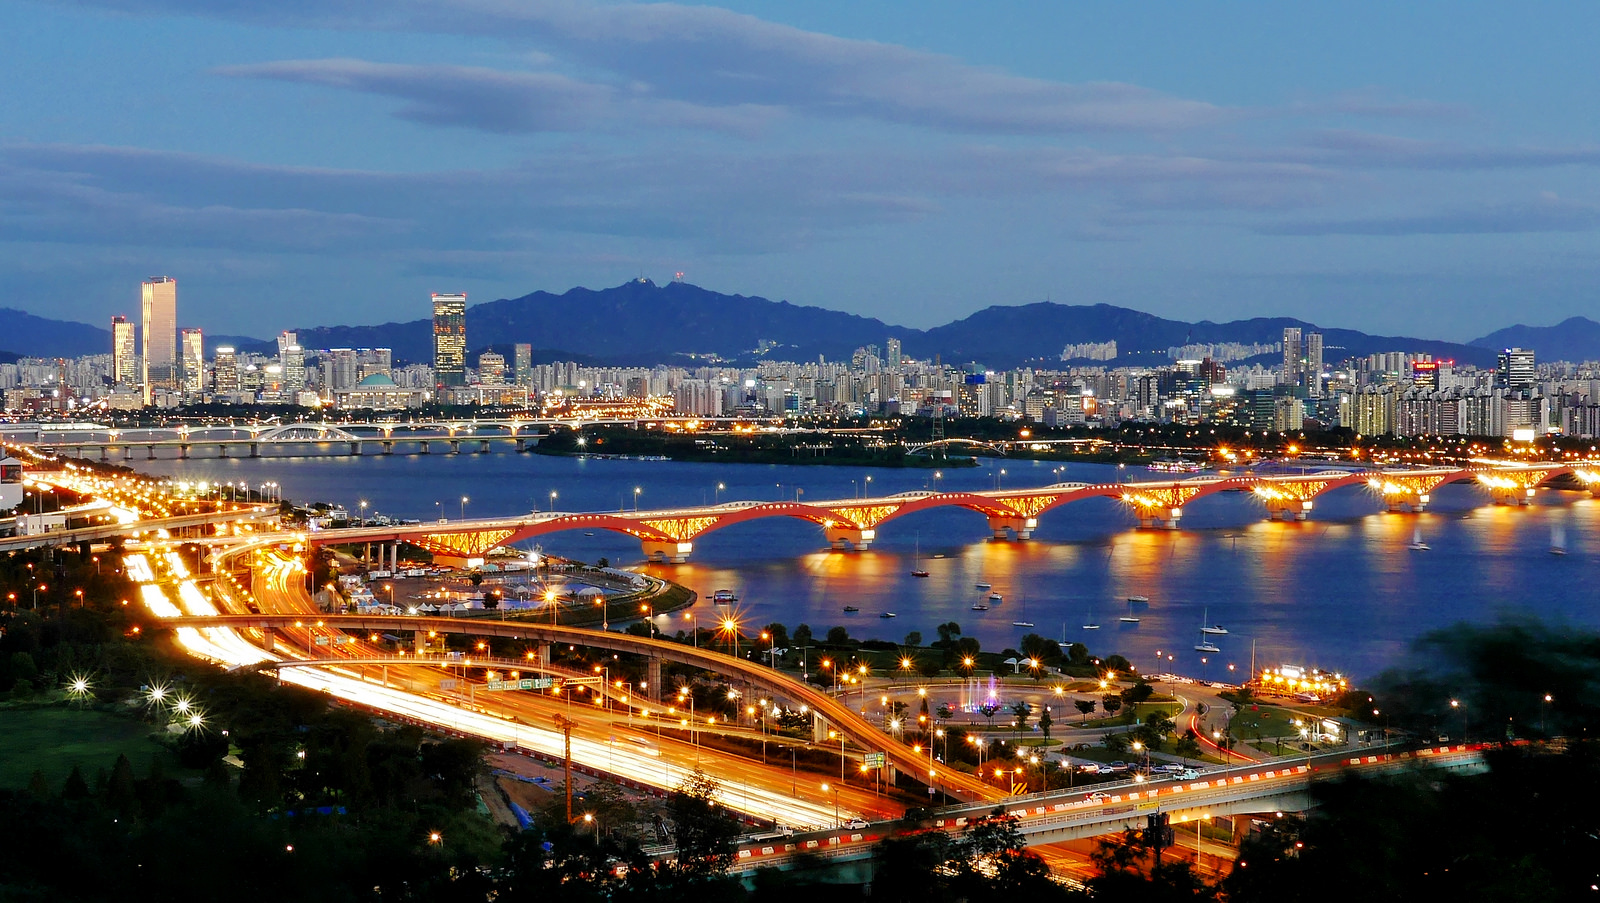 Seongsan Bridge and the Han River, Seoul, South Korea